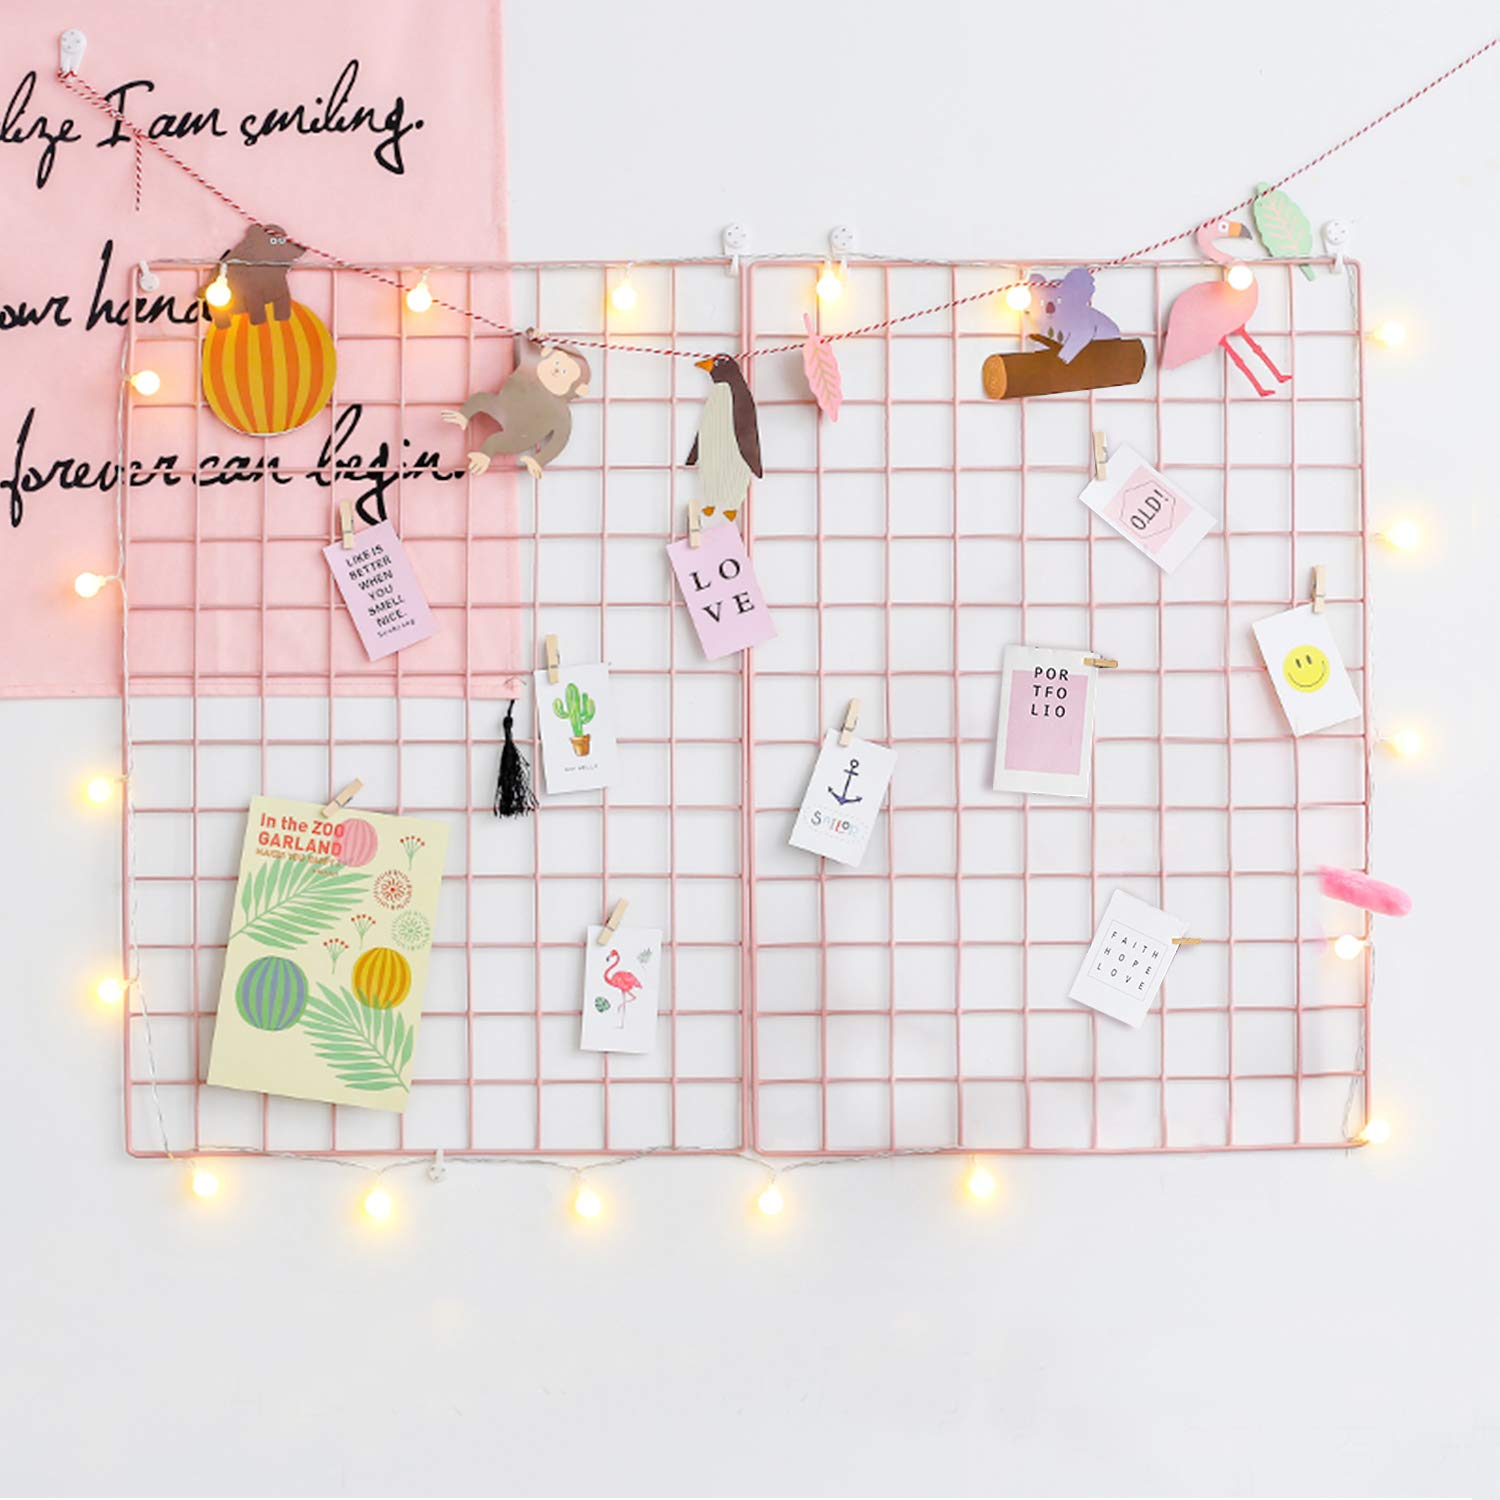 GBYAN Grid Wall Panel (Pack of 2) Decorative Iron Rack Clip, Painted Wire Photograph Grid Wall Hanging Picture Multifunctional Photo Hanging Display Wall Storage Organizer,25.6inch x17.7inch, Pink by GBYAN